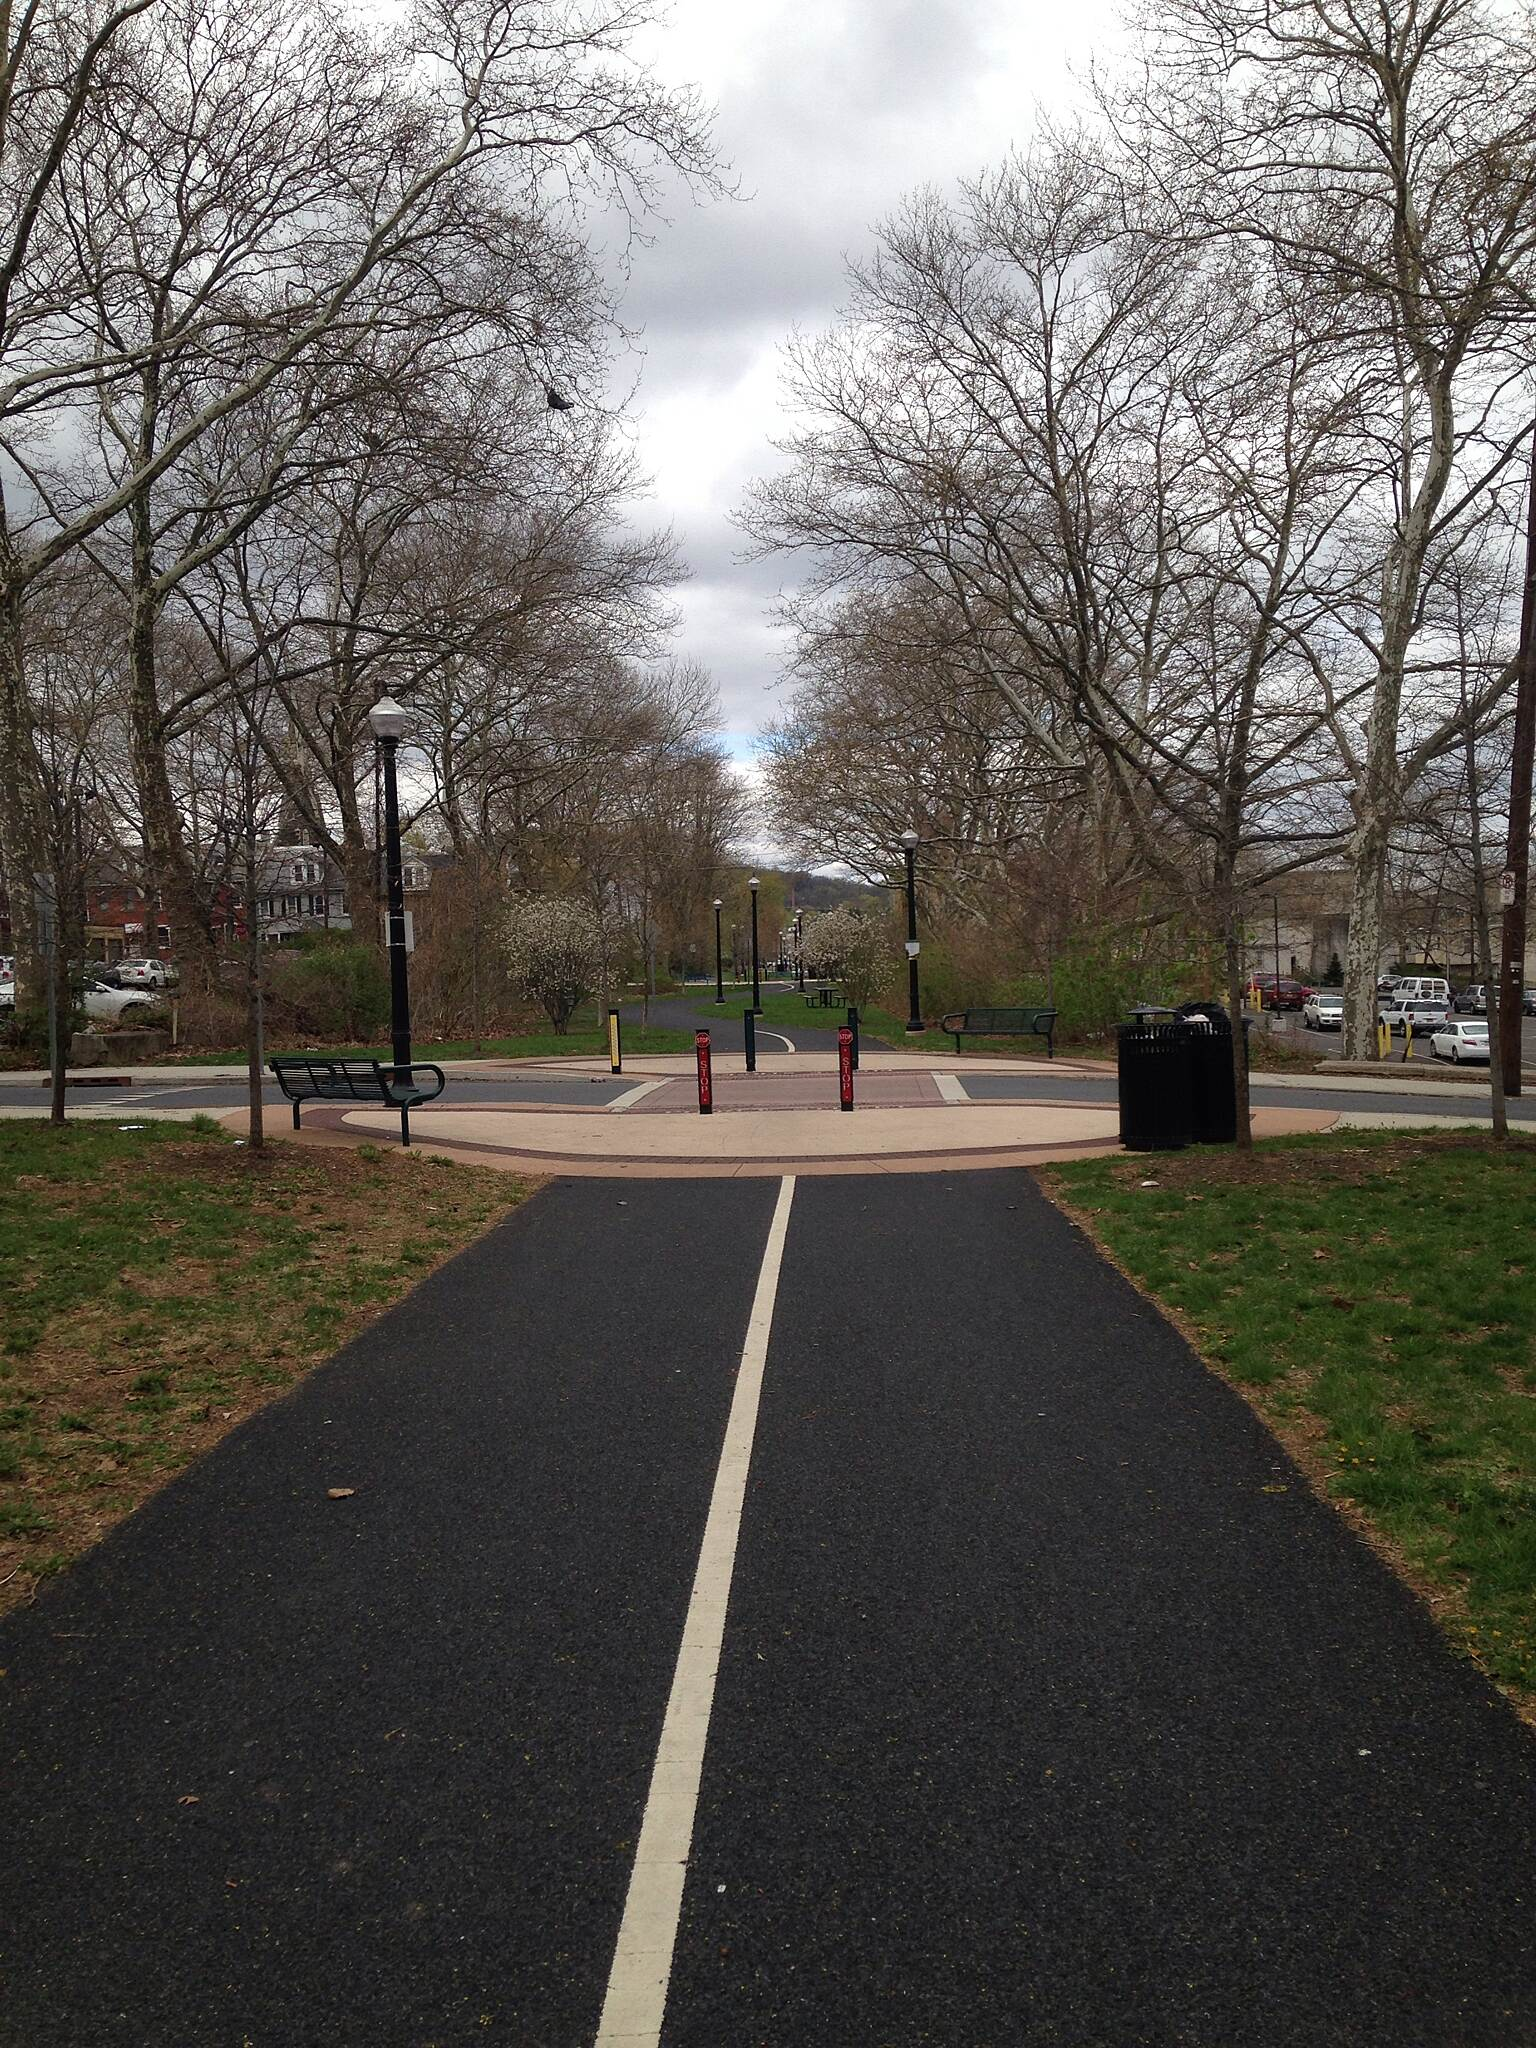 South Bethlehem Greenway South Bethlehem Greenway Photo submitted by TrailLink user slim gravey